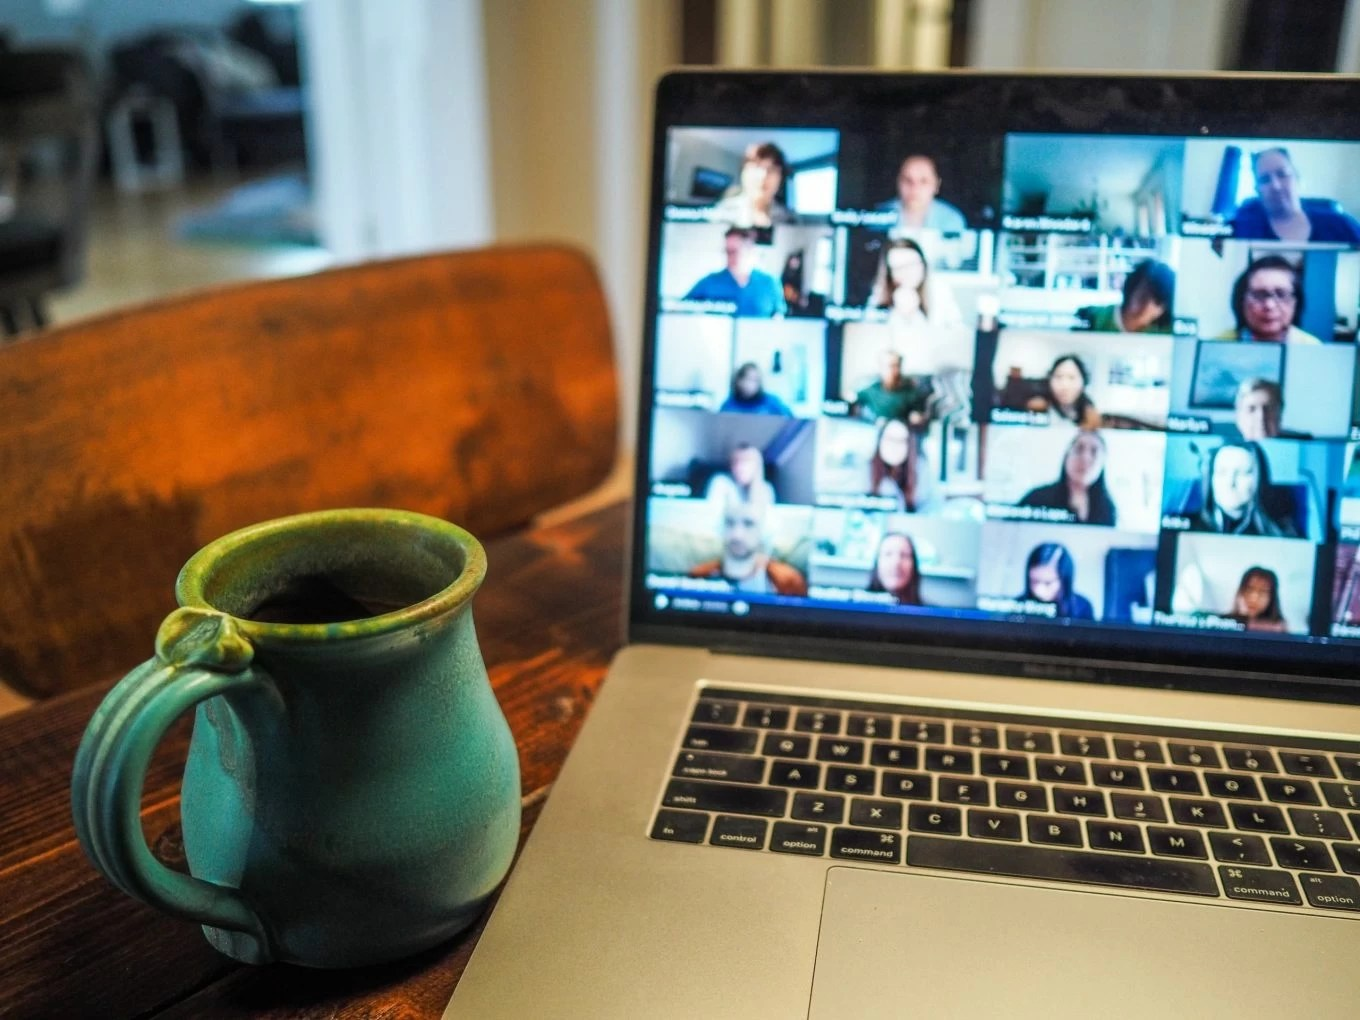 Microsoft Teams Is Great For Better Remote Working